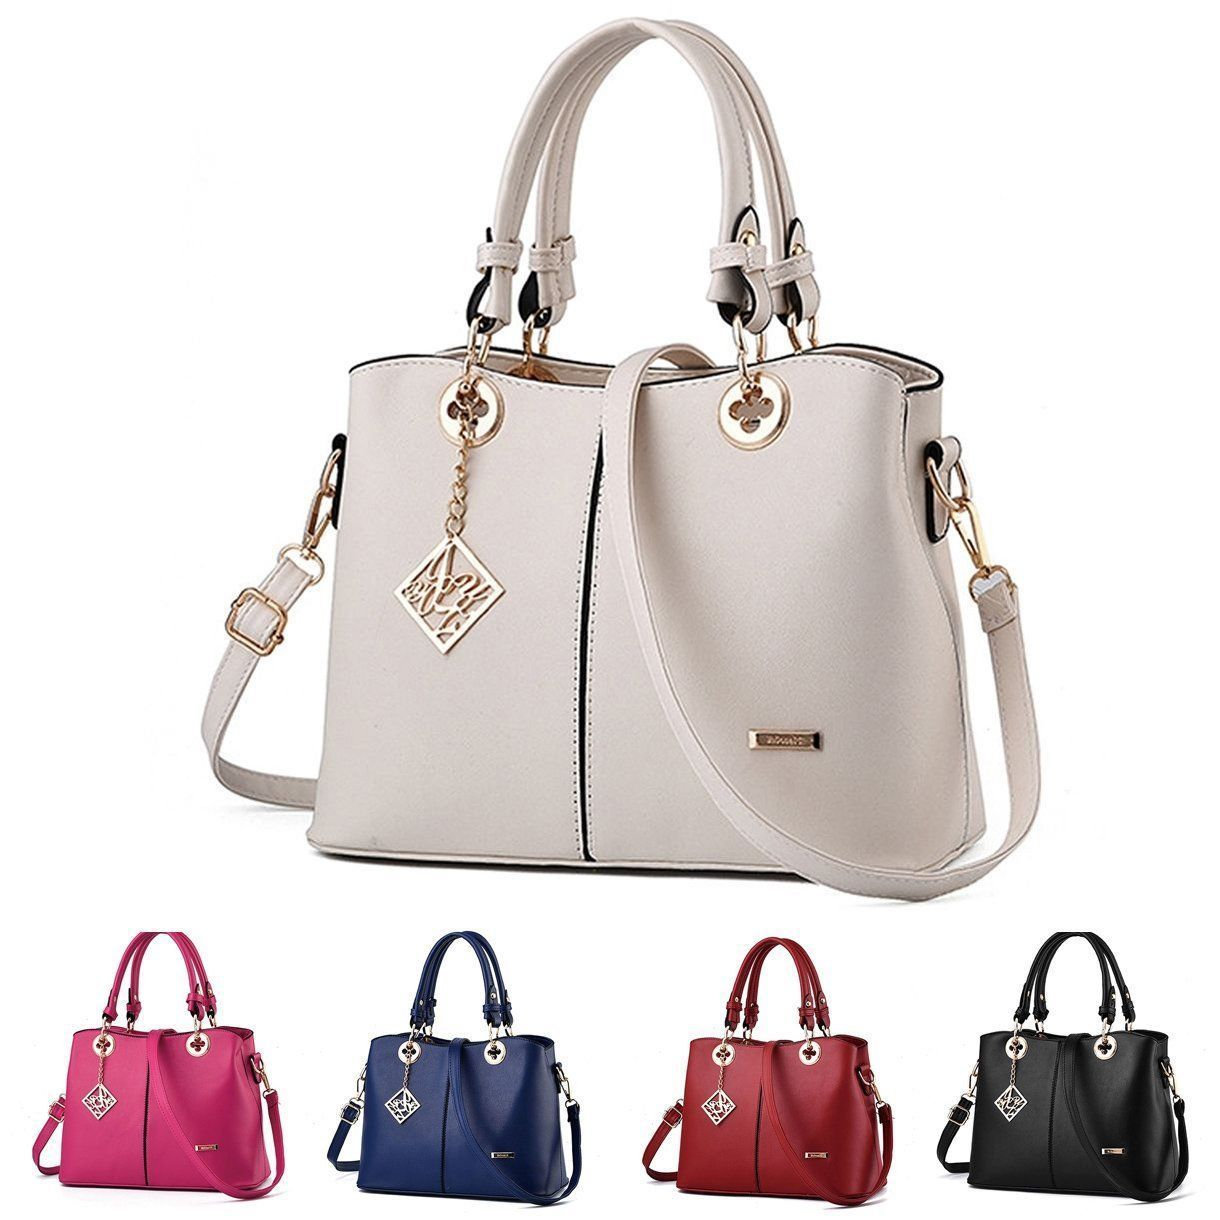 4c1ae46b97 Hot Women Handbag Shoulder Bags Tote Purse Pu Leather Messenger Hobo Bag  Satchel